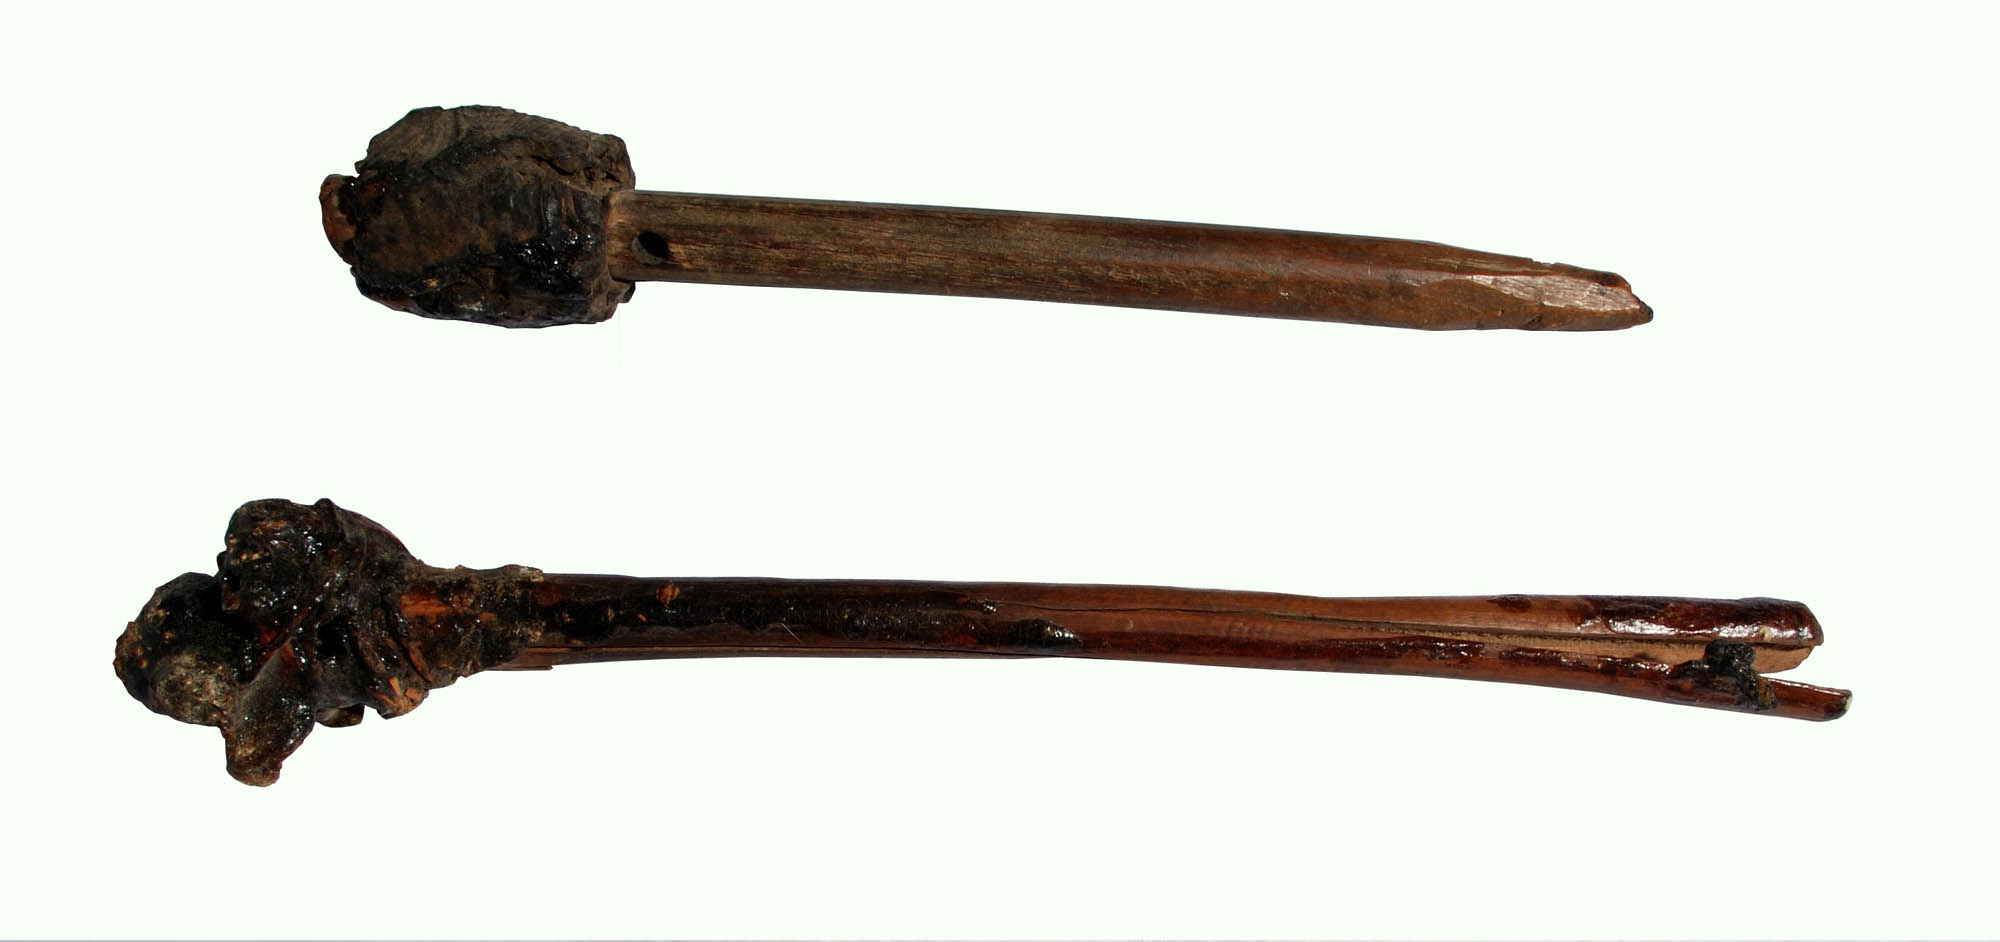 Wooden drumsticks for use with slit gong